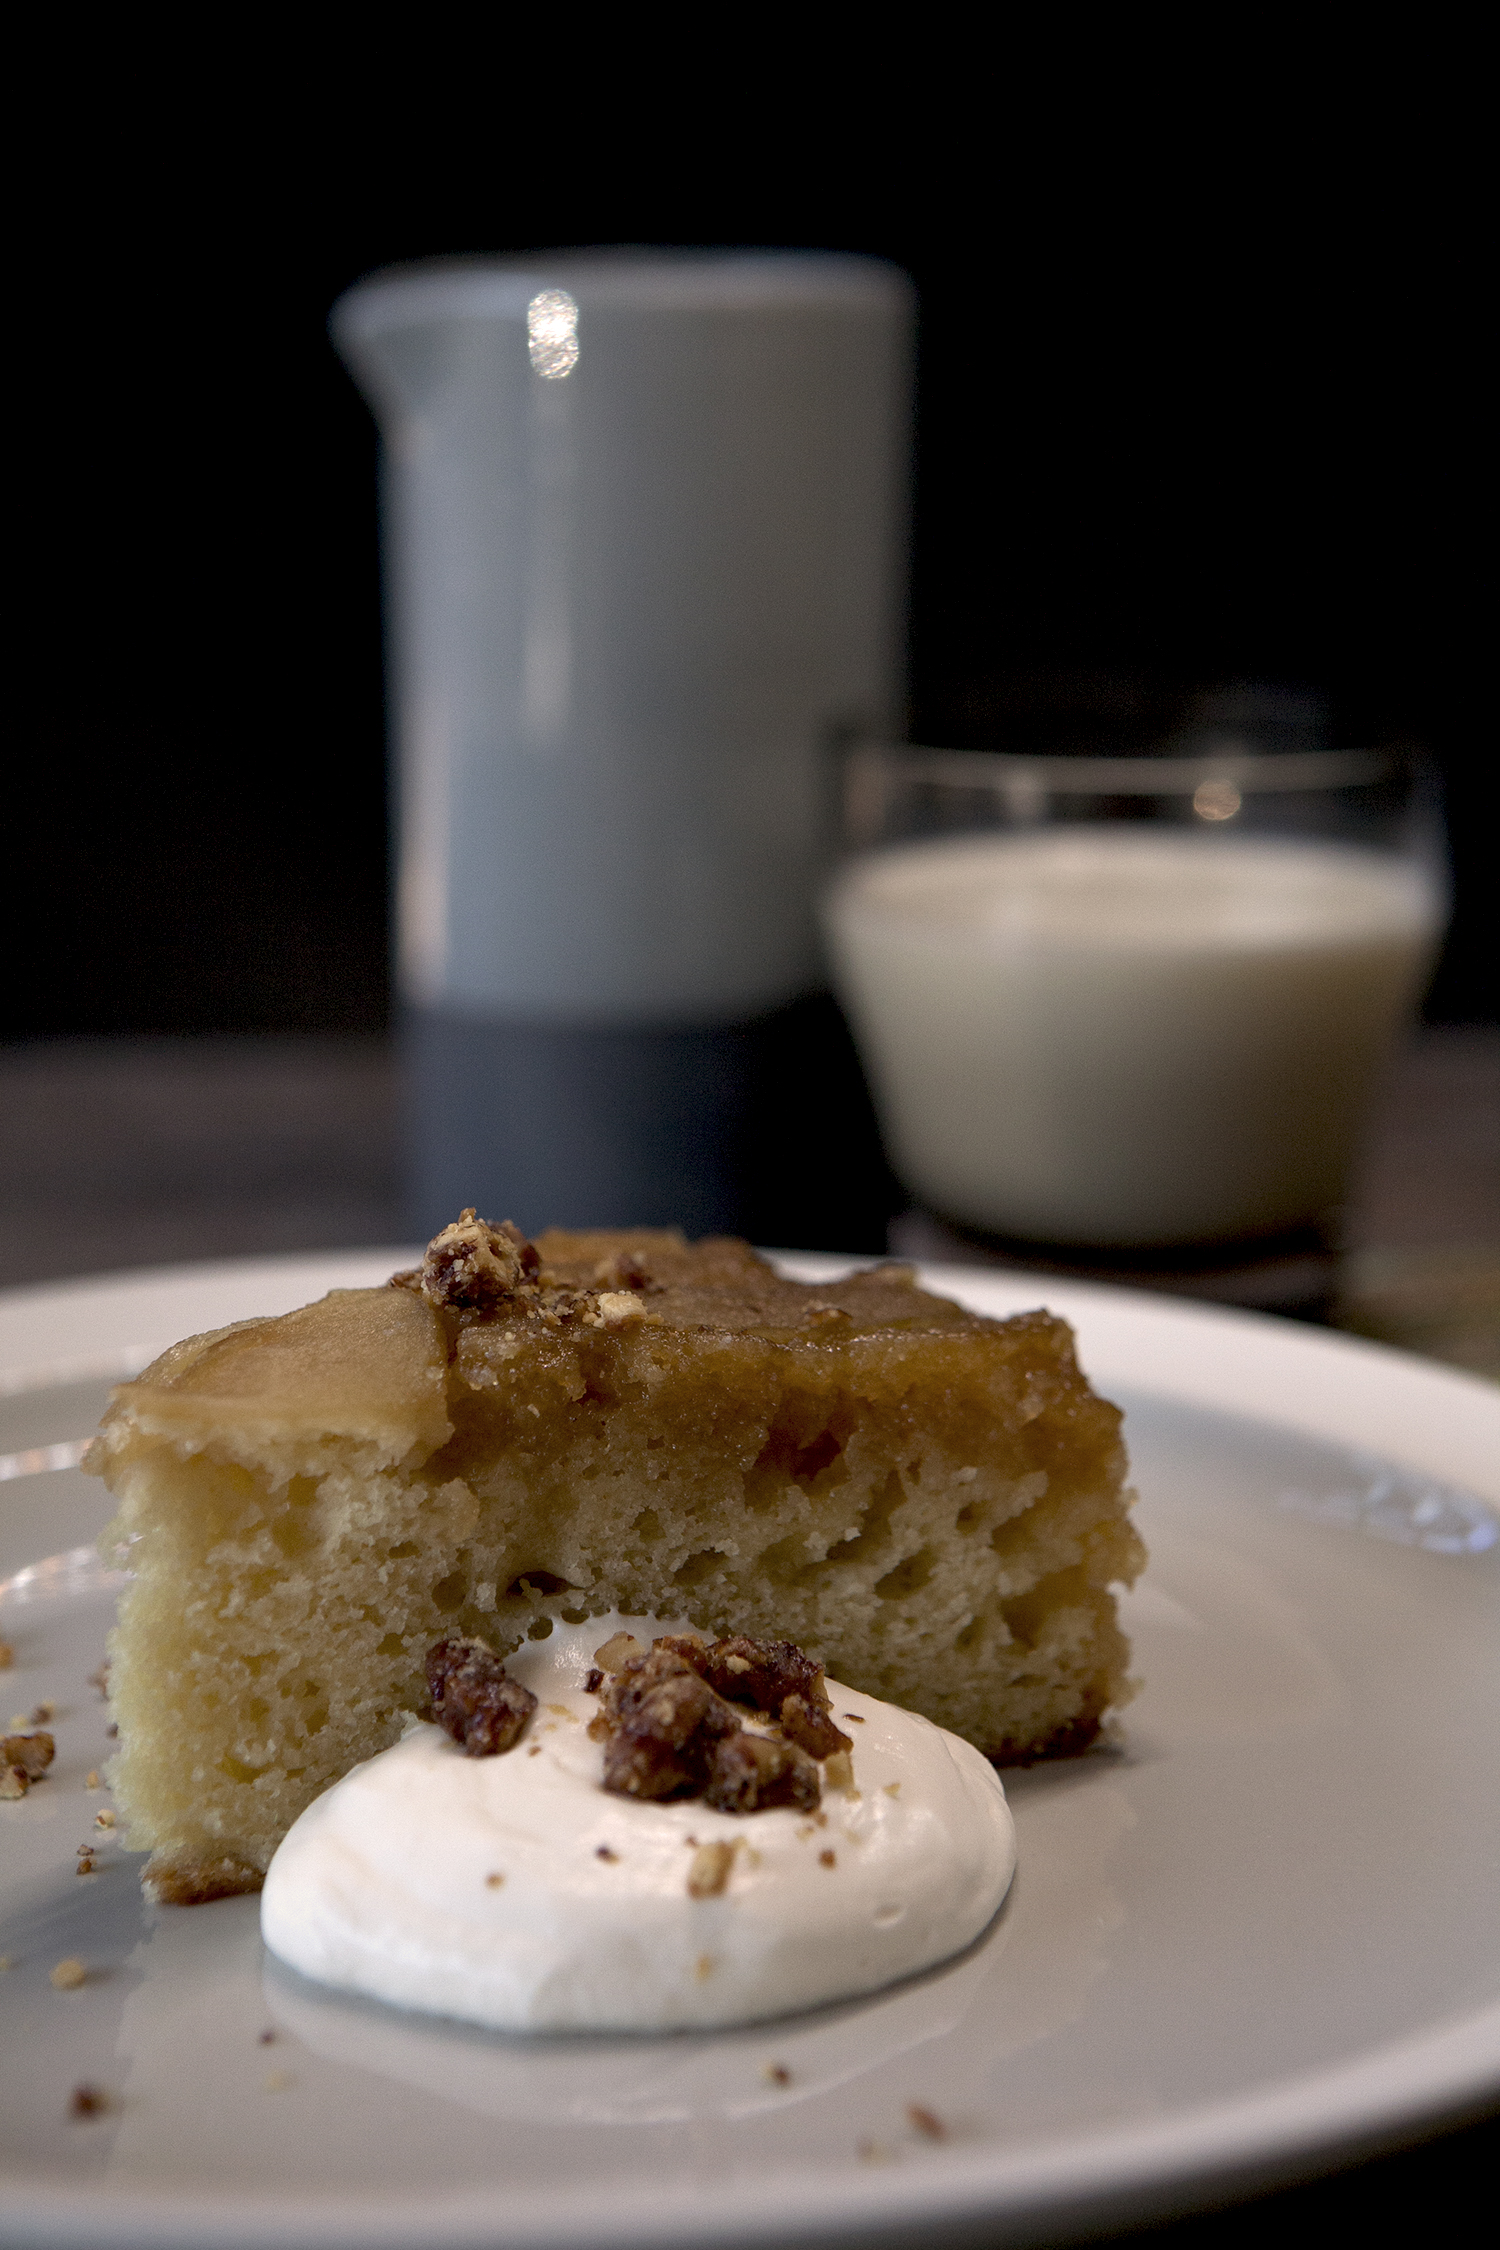 Warm apple cake with toasted walnuts